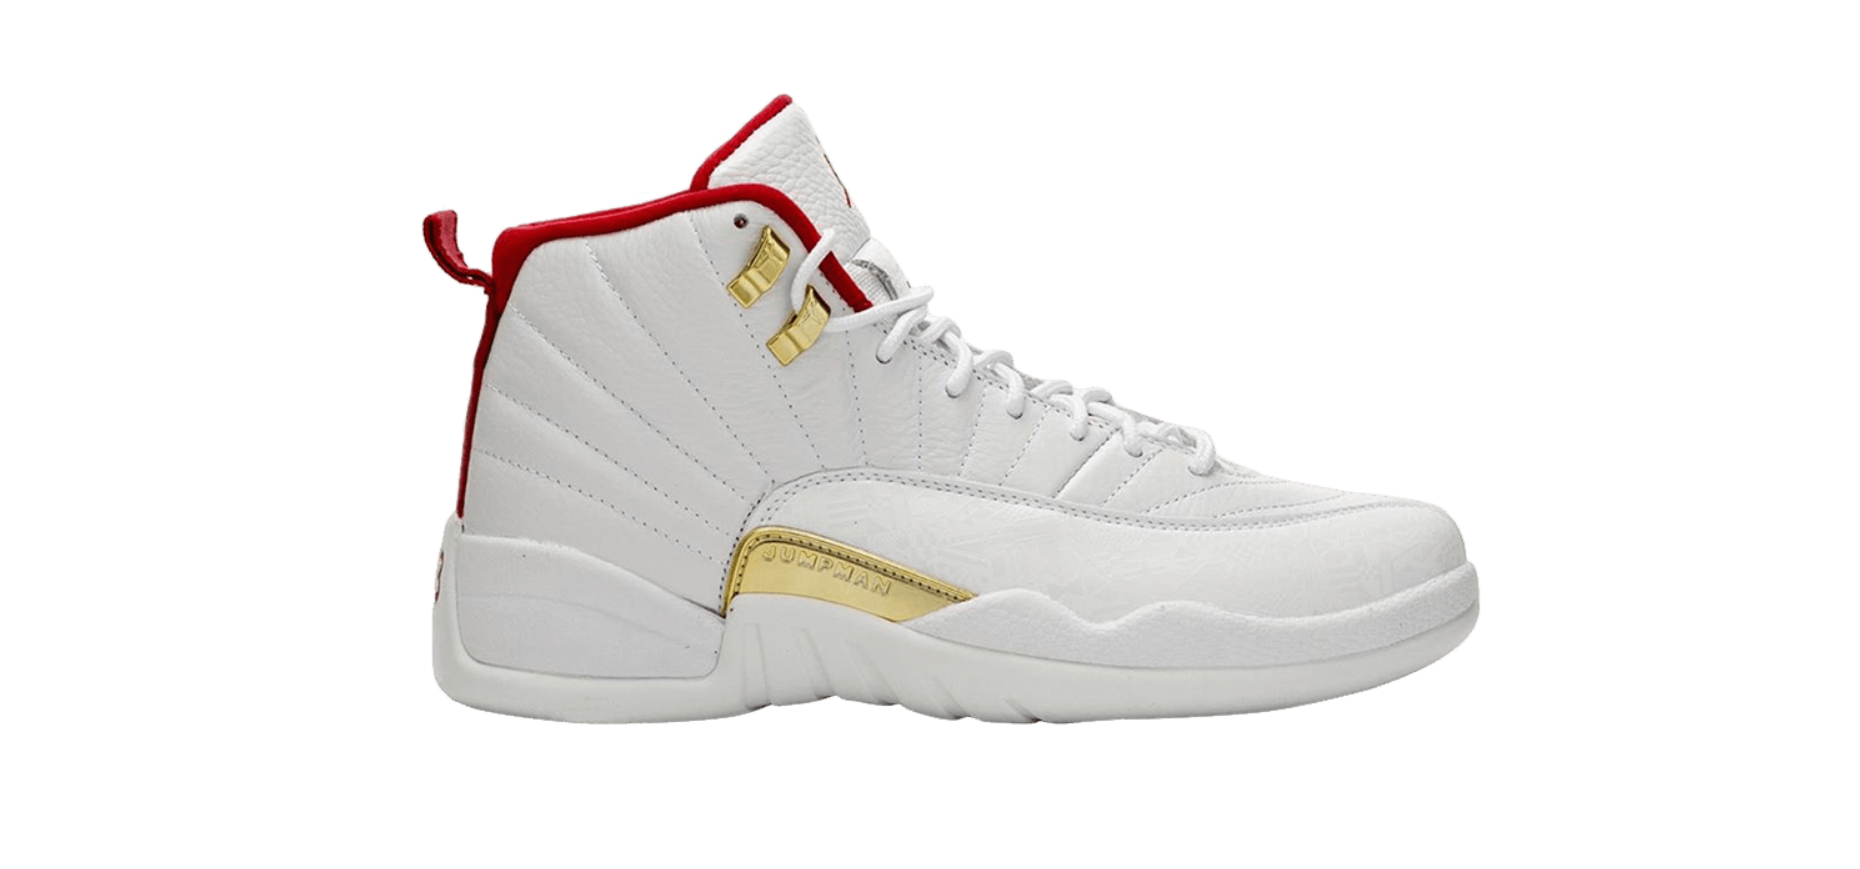 Air Jordan 12 Retro 'FIBA' WHITE/UNIVERSITY RED-METALLIC GOLD